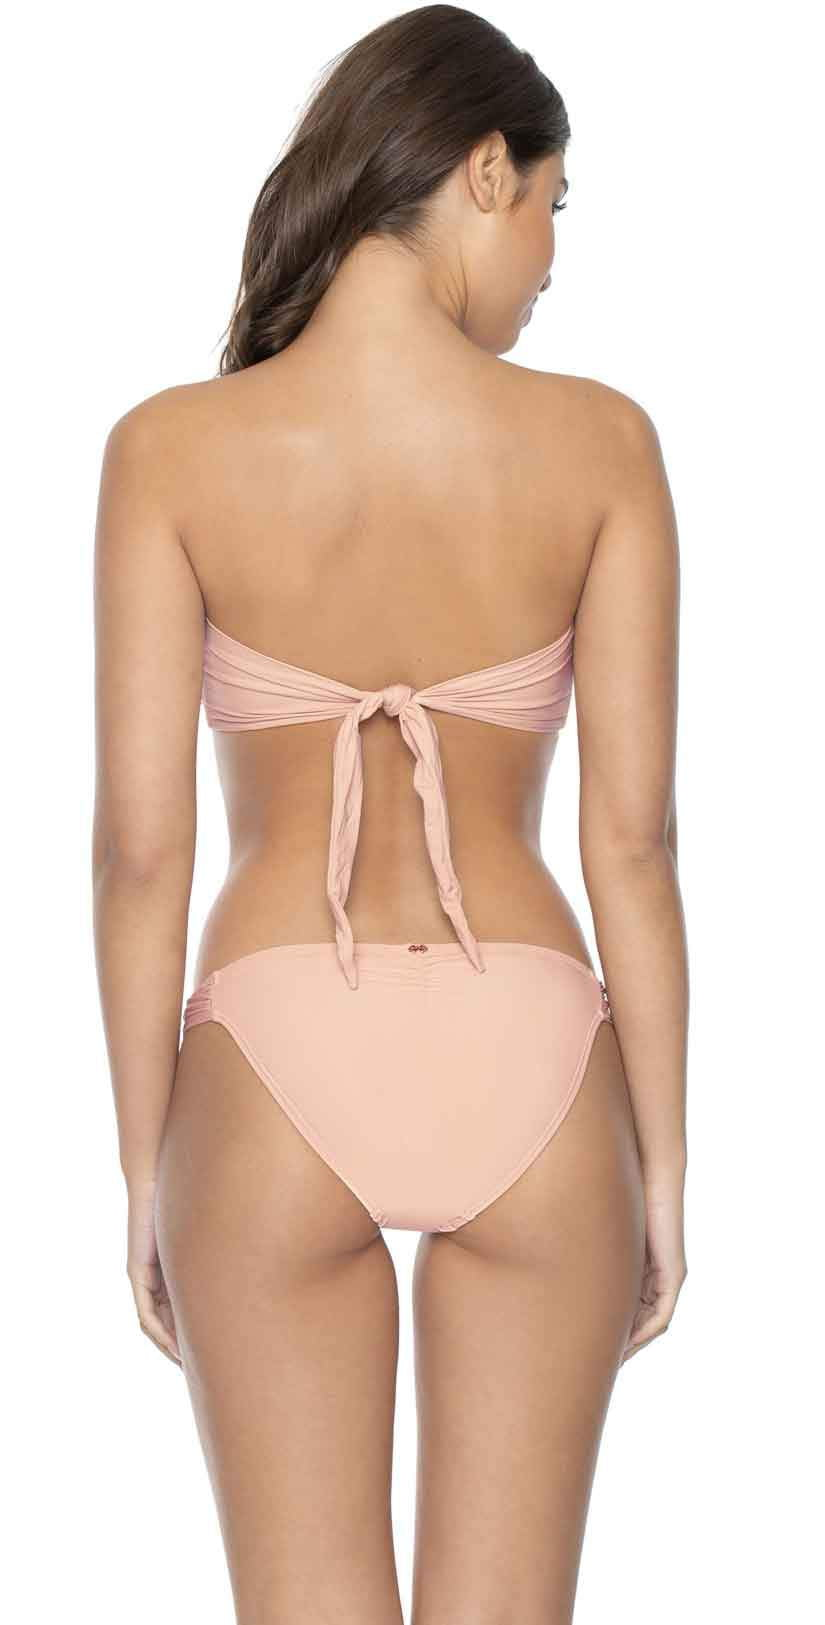 PilyQ Pink Sand Lace Fanned Full Bikini Bottom: